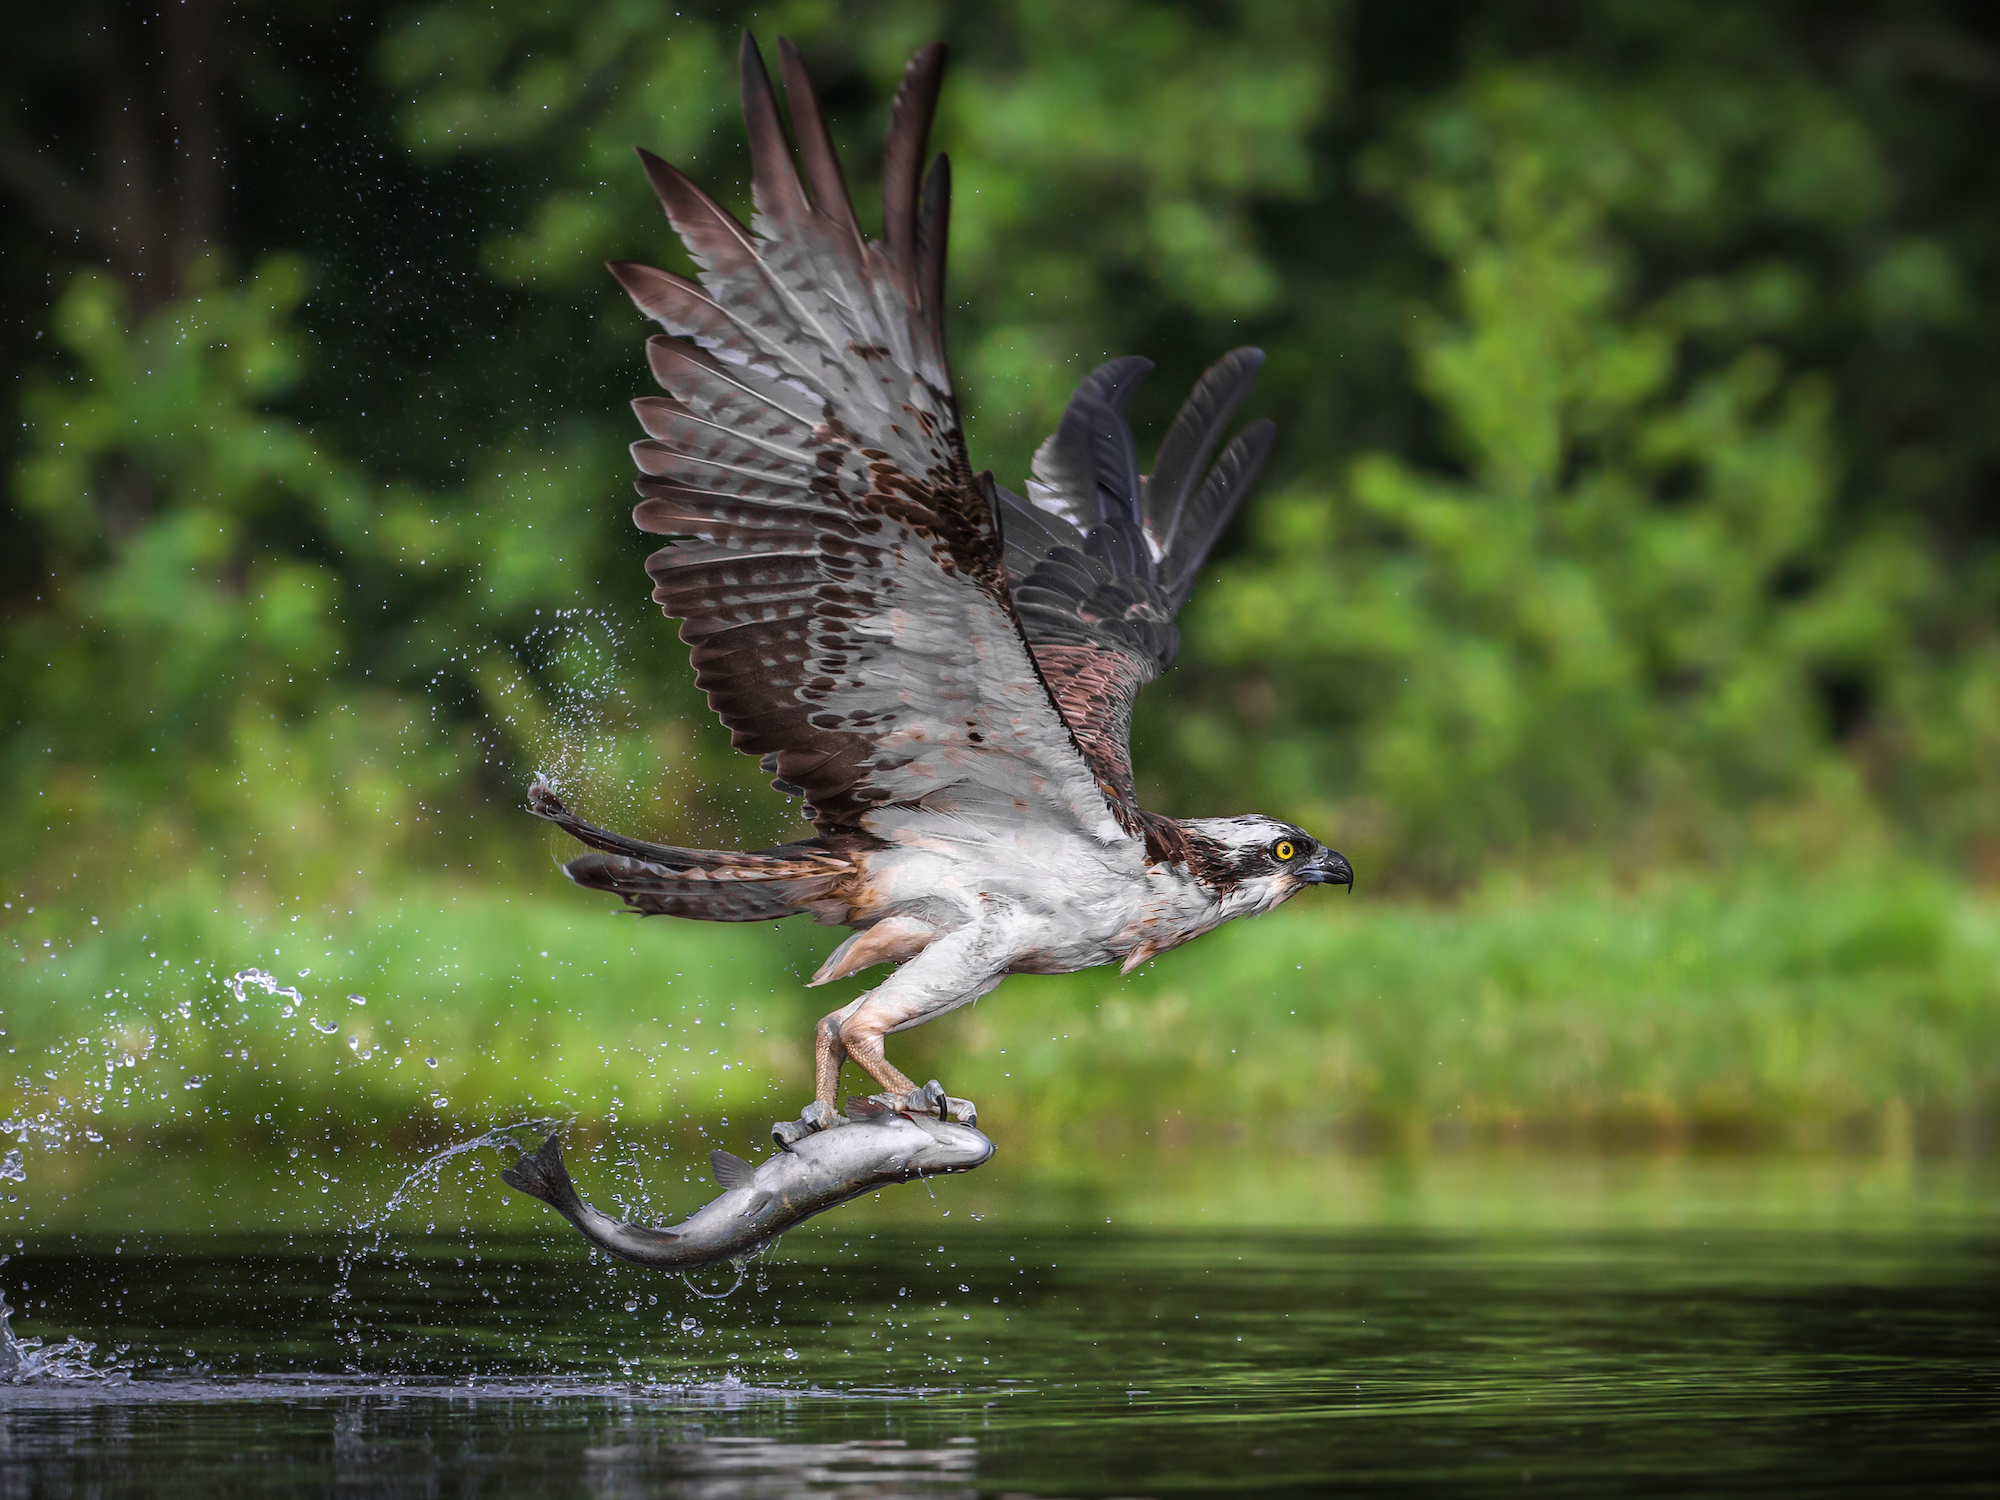 Flying osprey with a fish in its claws